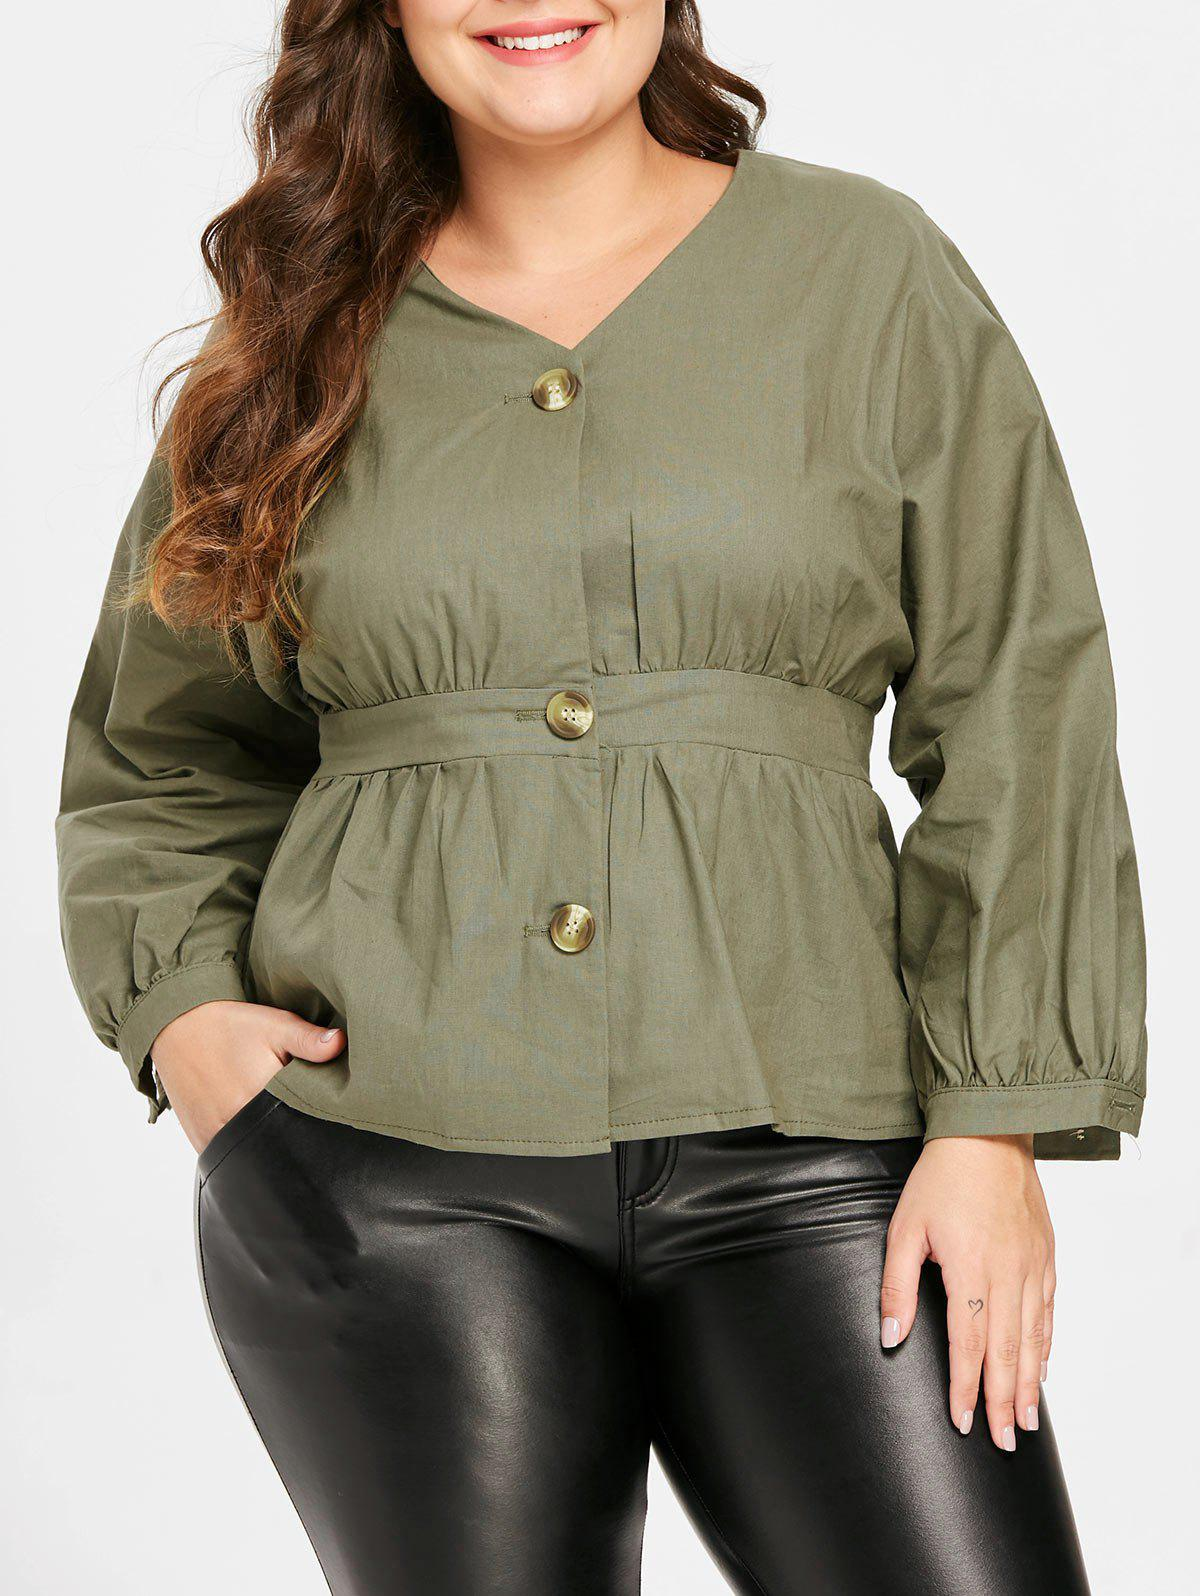 Store Button Detail Plus Size V Neck Shirt